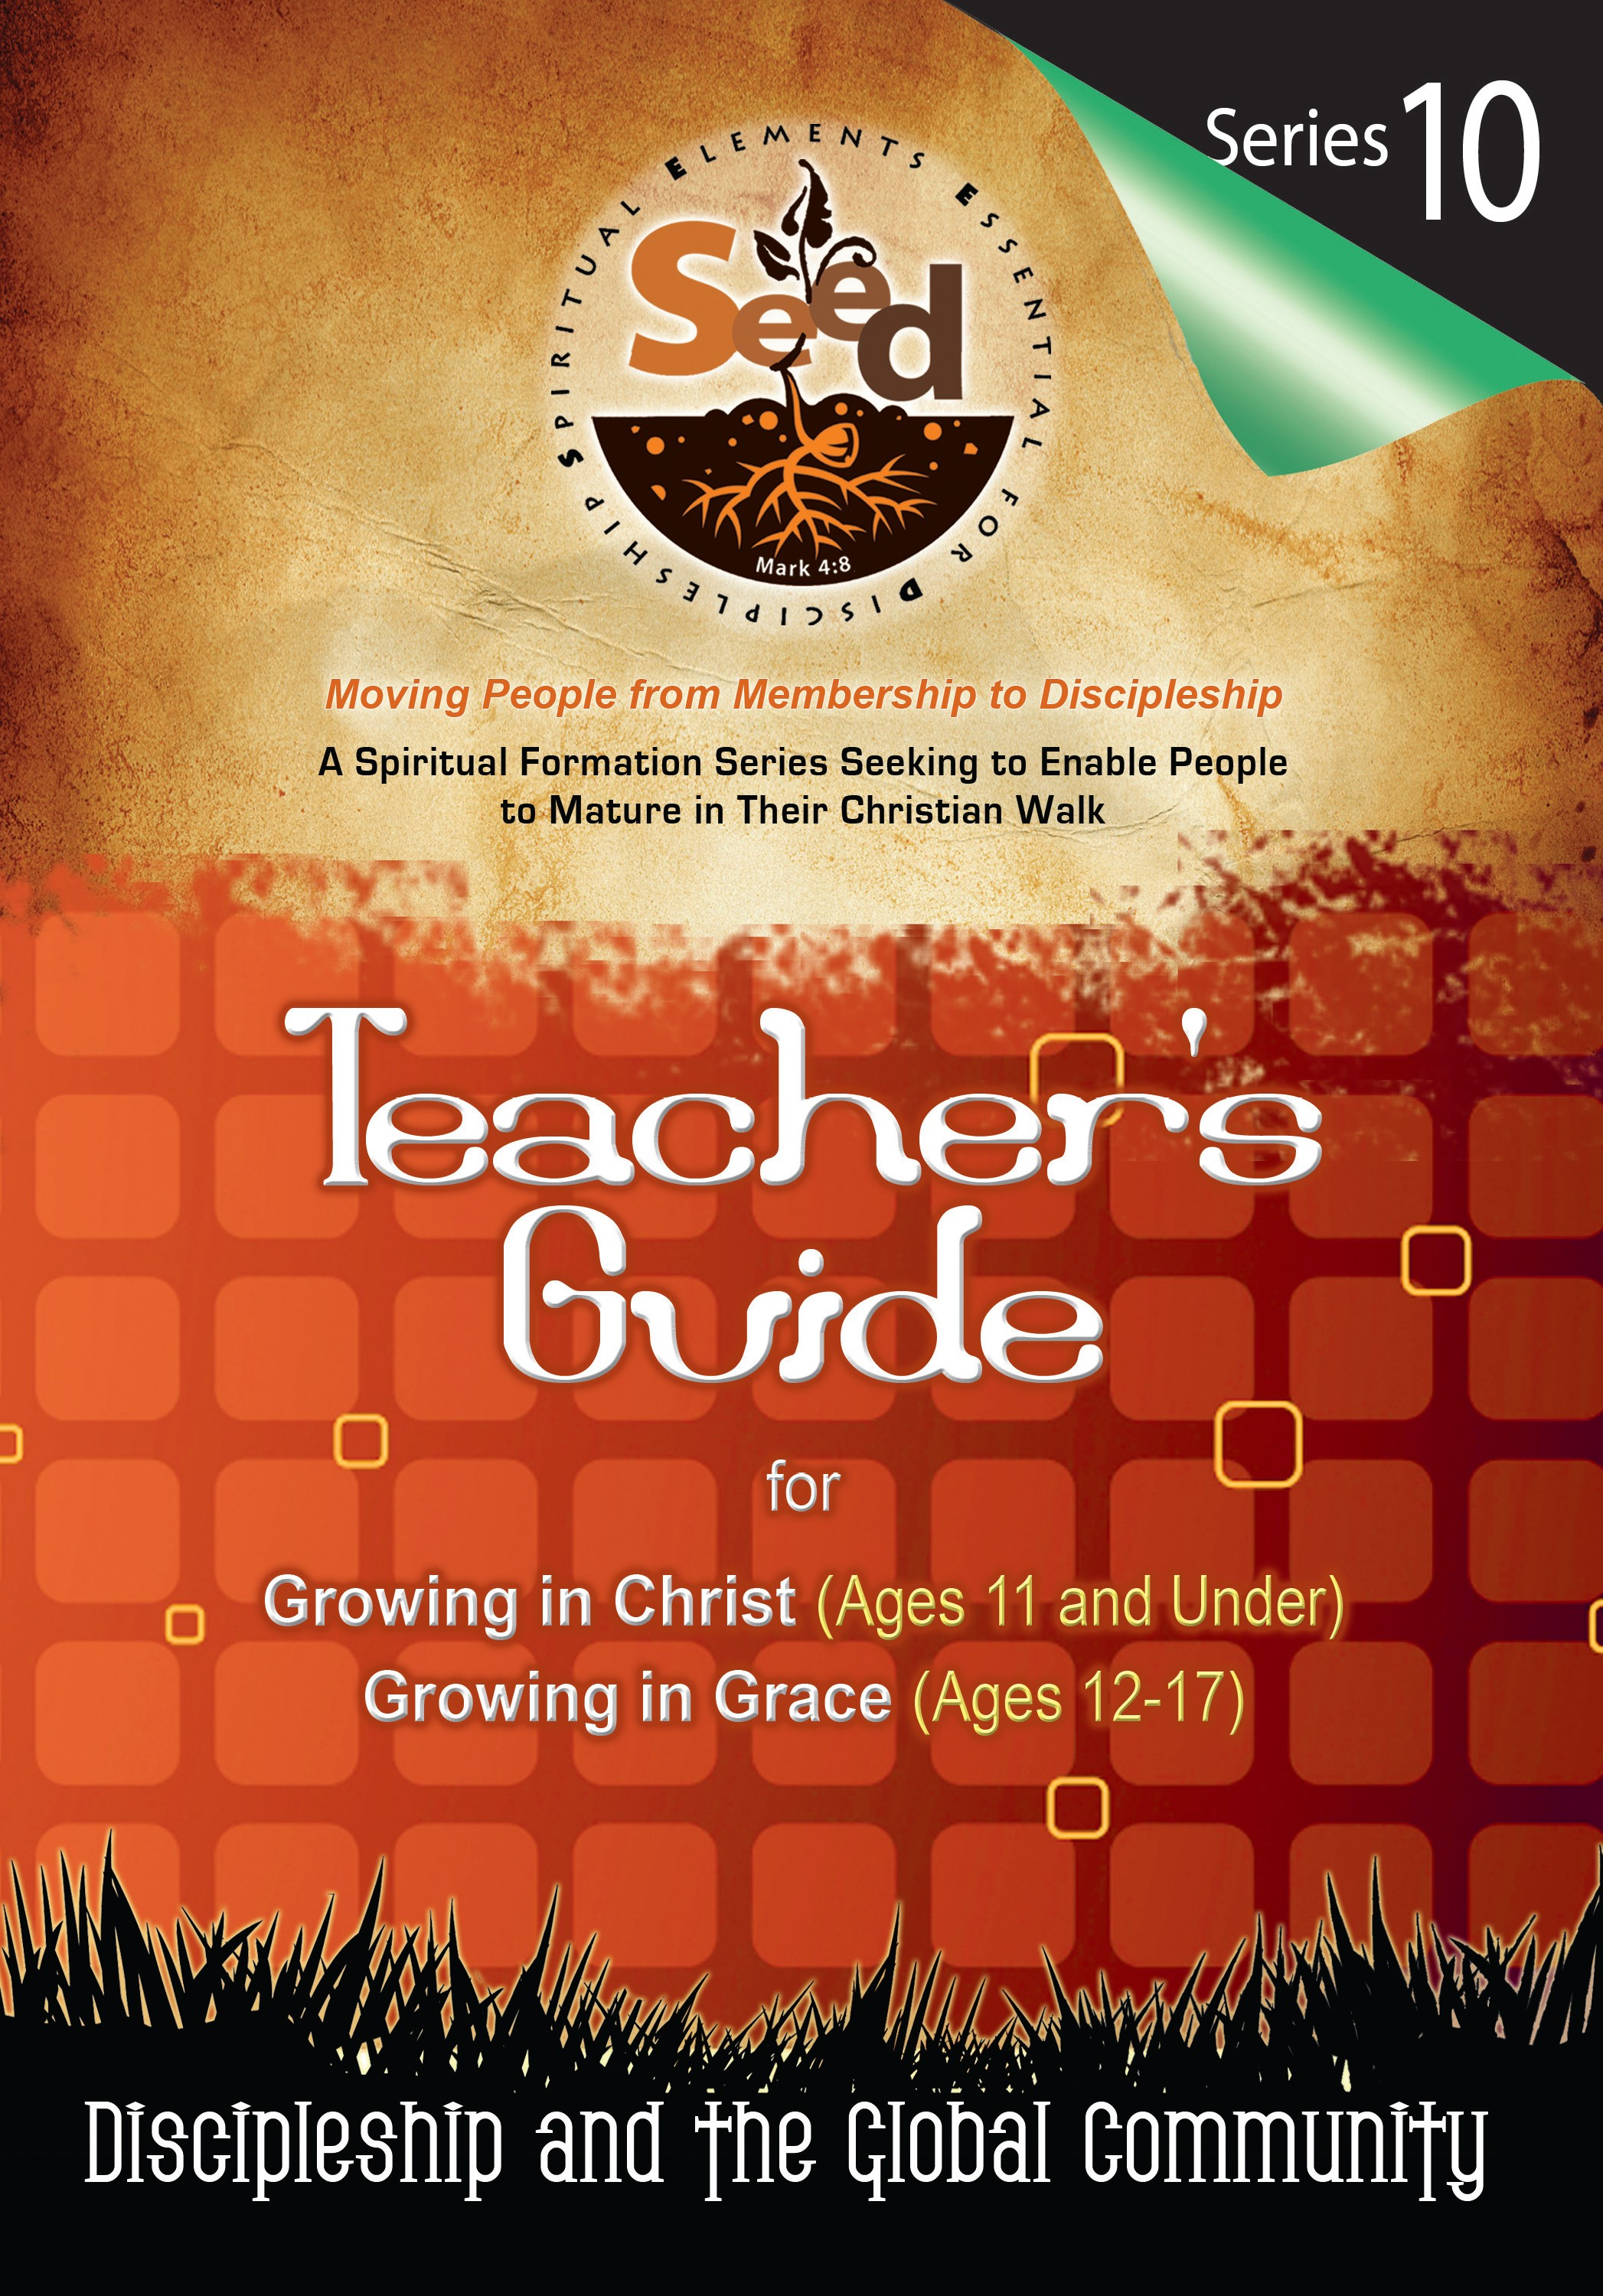 SEED Children/Youth Teacher's Guide: Series 10: Discipleship and the Global Community